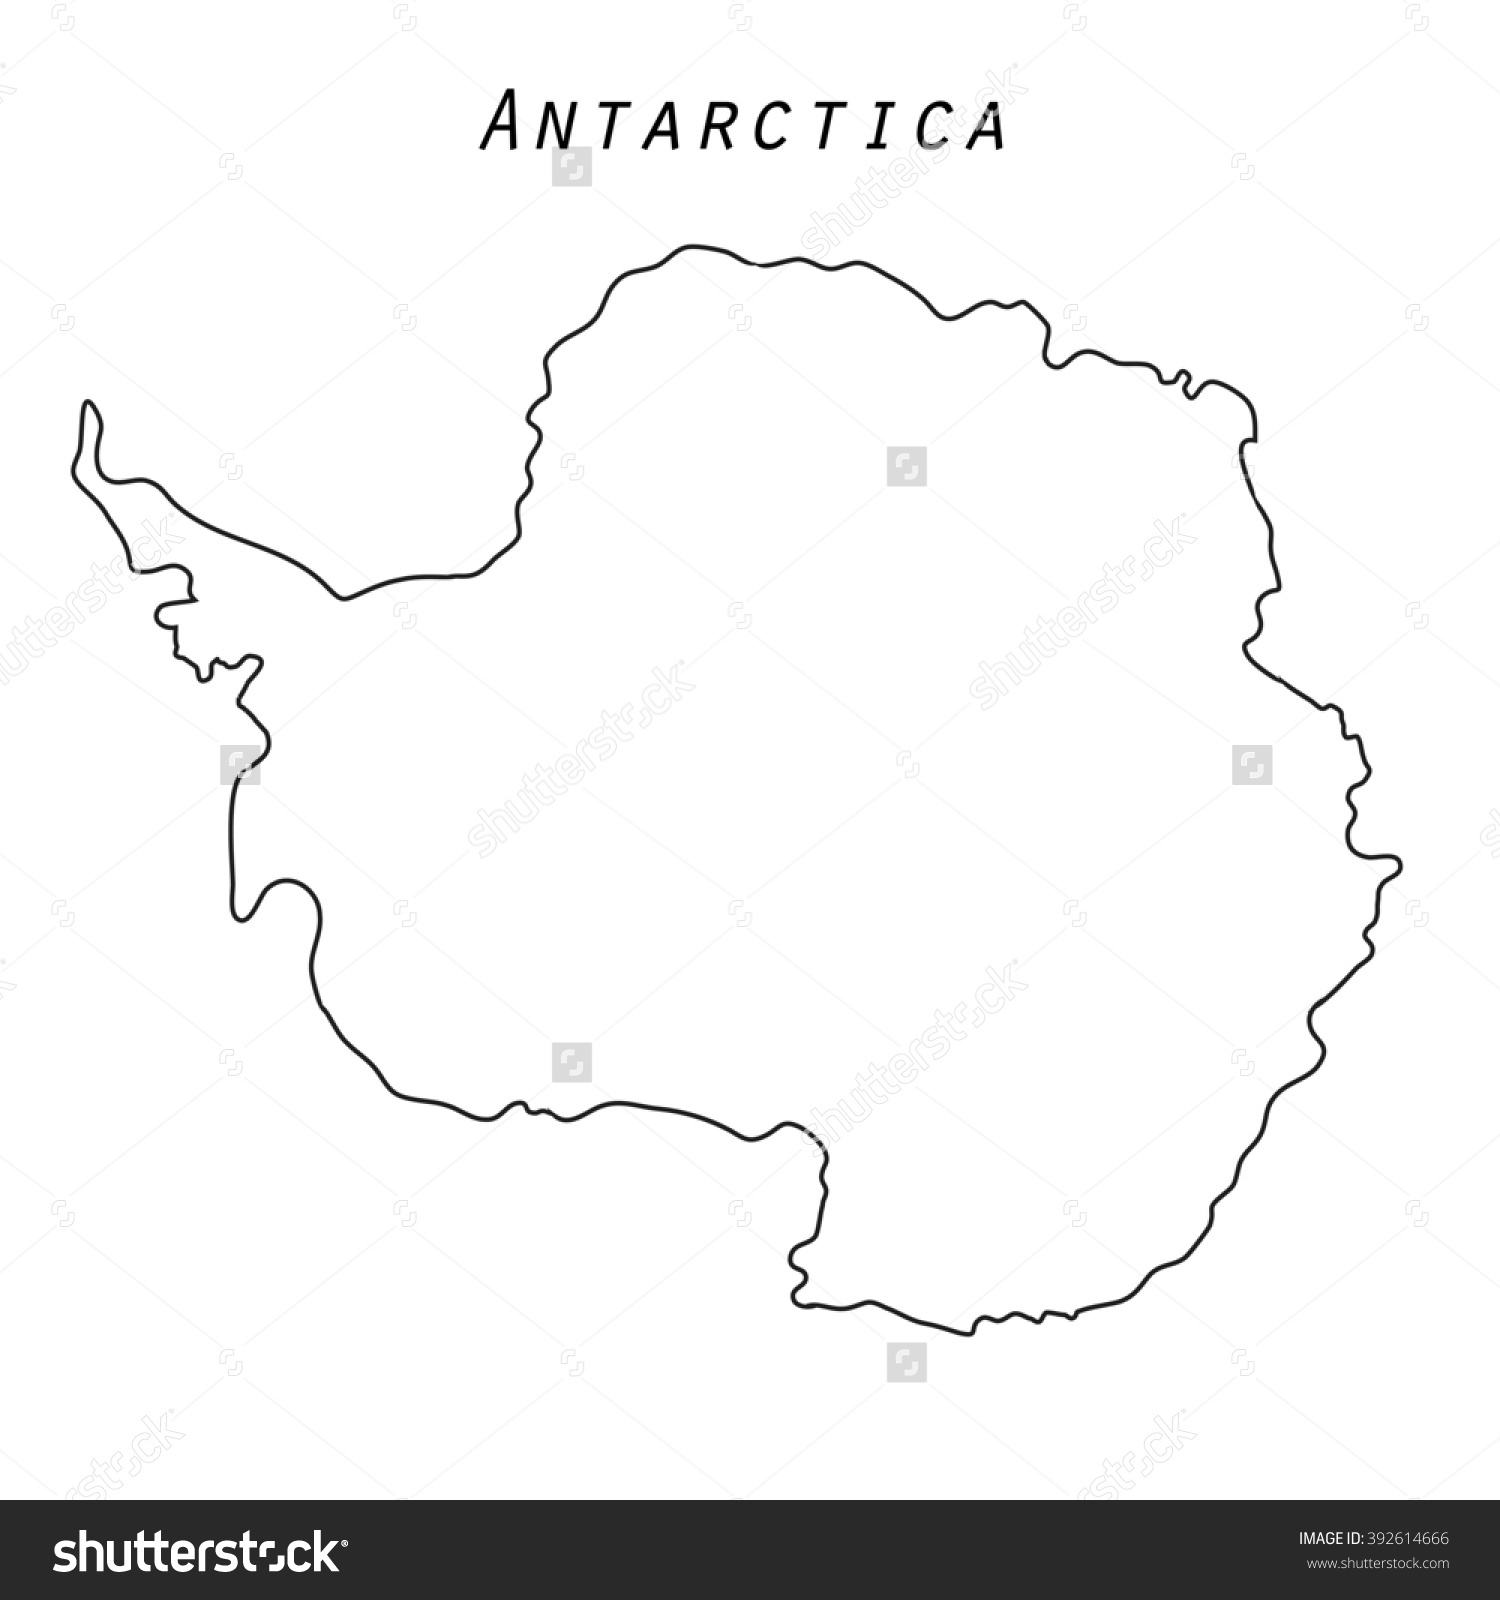 Antarctica clipart outline Stock South Map Antarctica With